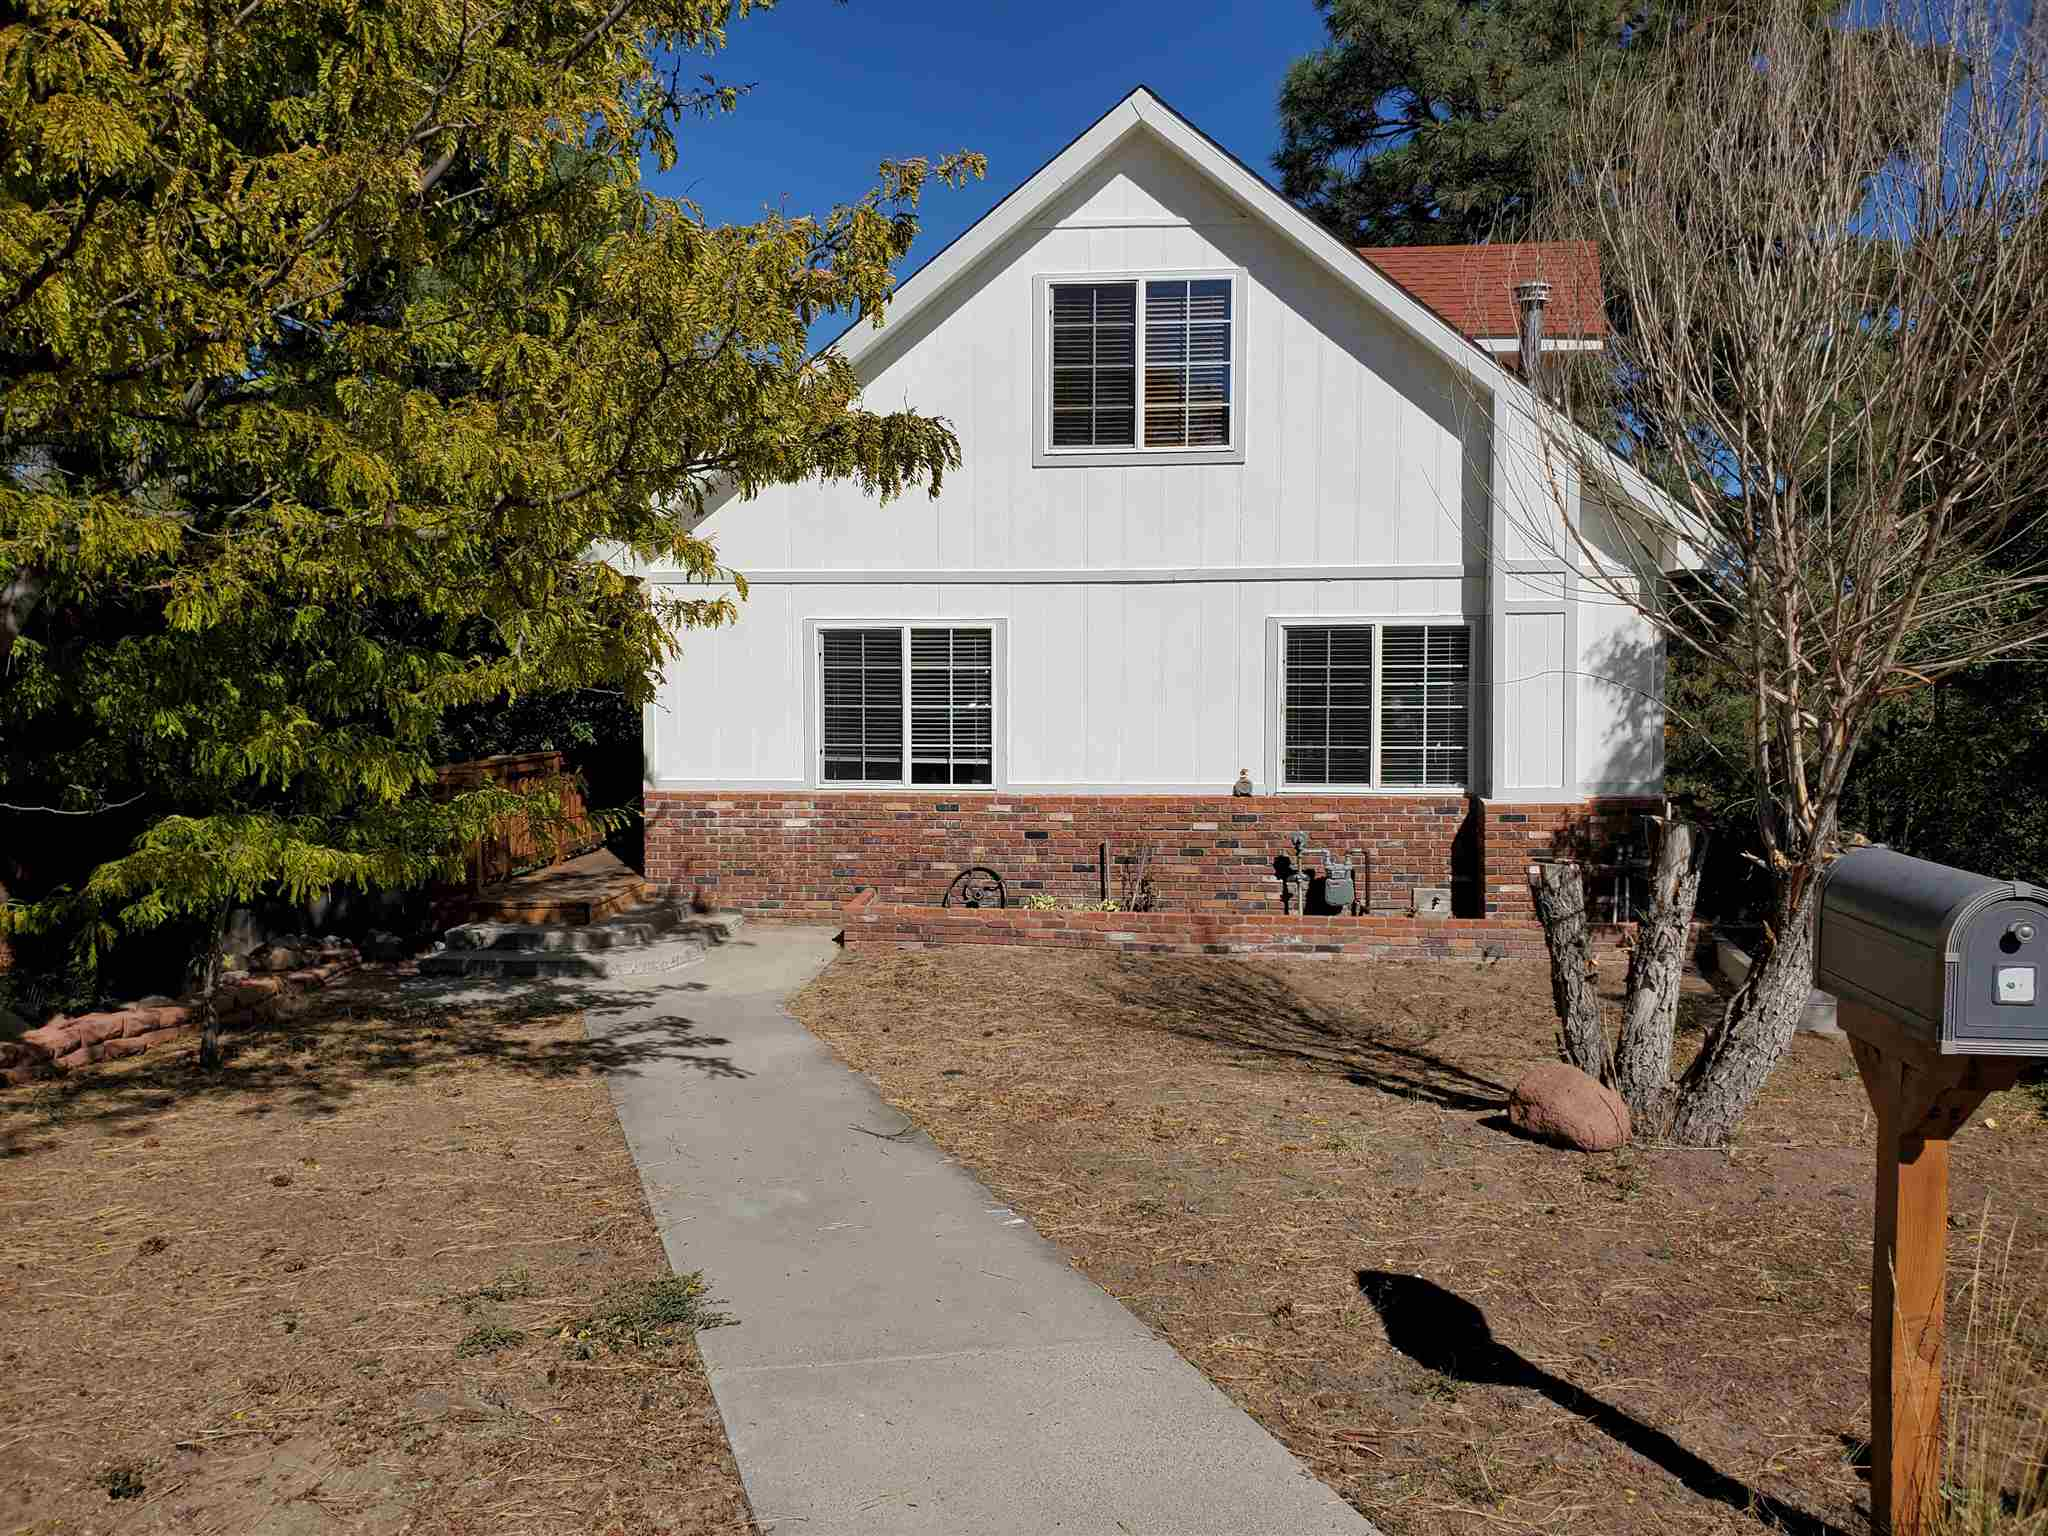 This beautiful multi-story home with a finished walk-out basement is perched at the top of a hill on a cute cul-de-sac, surrounded by tall ponderosa pines with views looking toward the Sangre De Cristo Mountains. You'll walk into the home on the main floor where you'll see beautiful maple hardwood flooring throughout the open concept living, dining and kitchen areas. There are tons of windows for natural sunlight, and sliding glass doors walking out to one of the two large decks at this home, which offer additional outdoor living and entertaining spaces. The kitchen has been beautifully remodeled with granite tile counter tops, stainless steel appliances and maple cabinets.  This floor also has 2 bedrooms and a remodeled ¾ bath. Upstairs is a cozy loft, master bedroom and a lovely remodeled full bath. The basement has brick flooring and a large wood burning stove, one bedroom, full bathroom, laundry/utility room and lots of storage.  This home has been very well maintained and upgraded throughout, and is ready for you to move right in.  A detached 2 car garage faces Alamo Road and has off-street parking for vehicles or a camper.